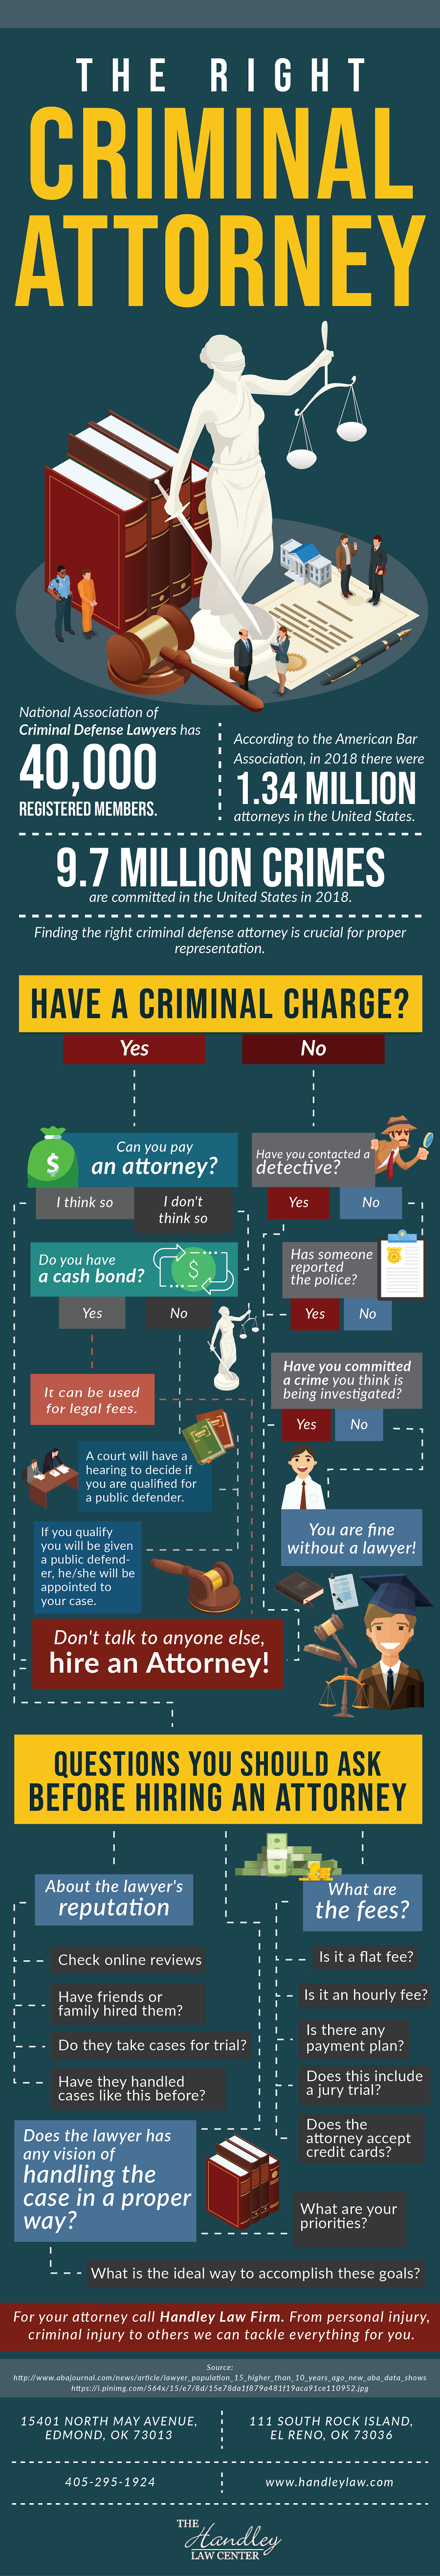 The Right Criminal Attorney Infographic